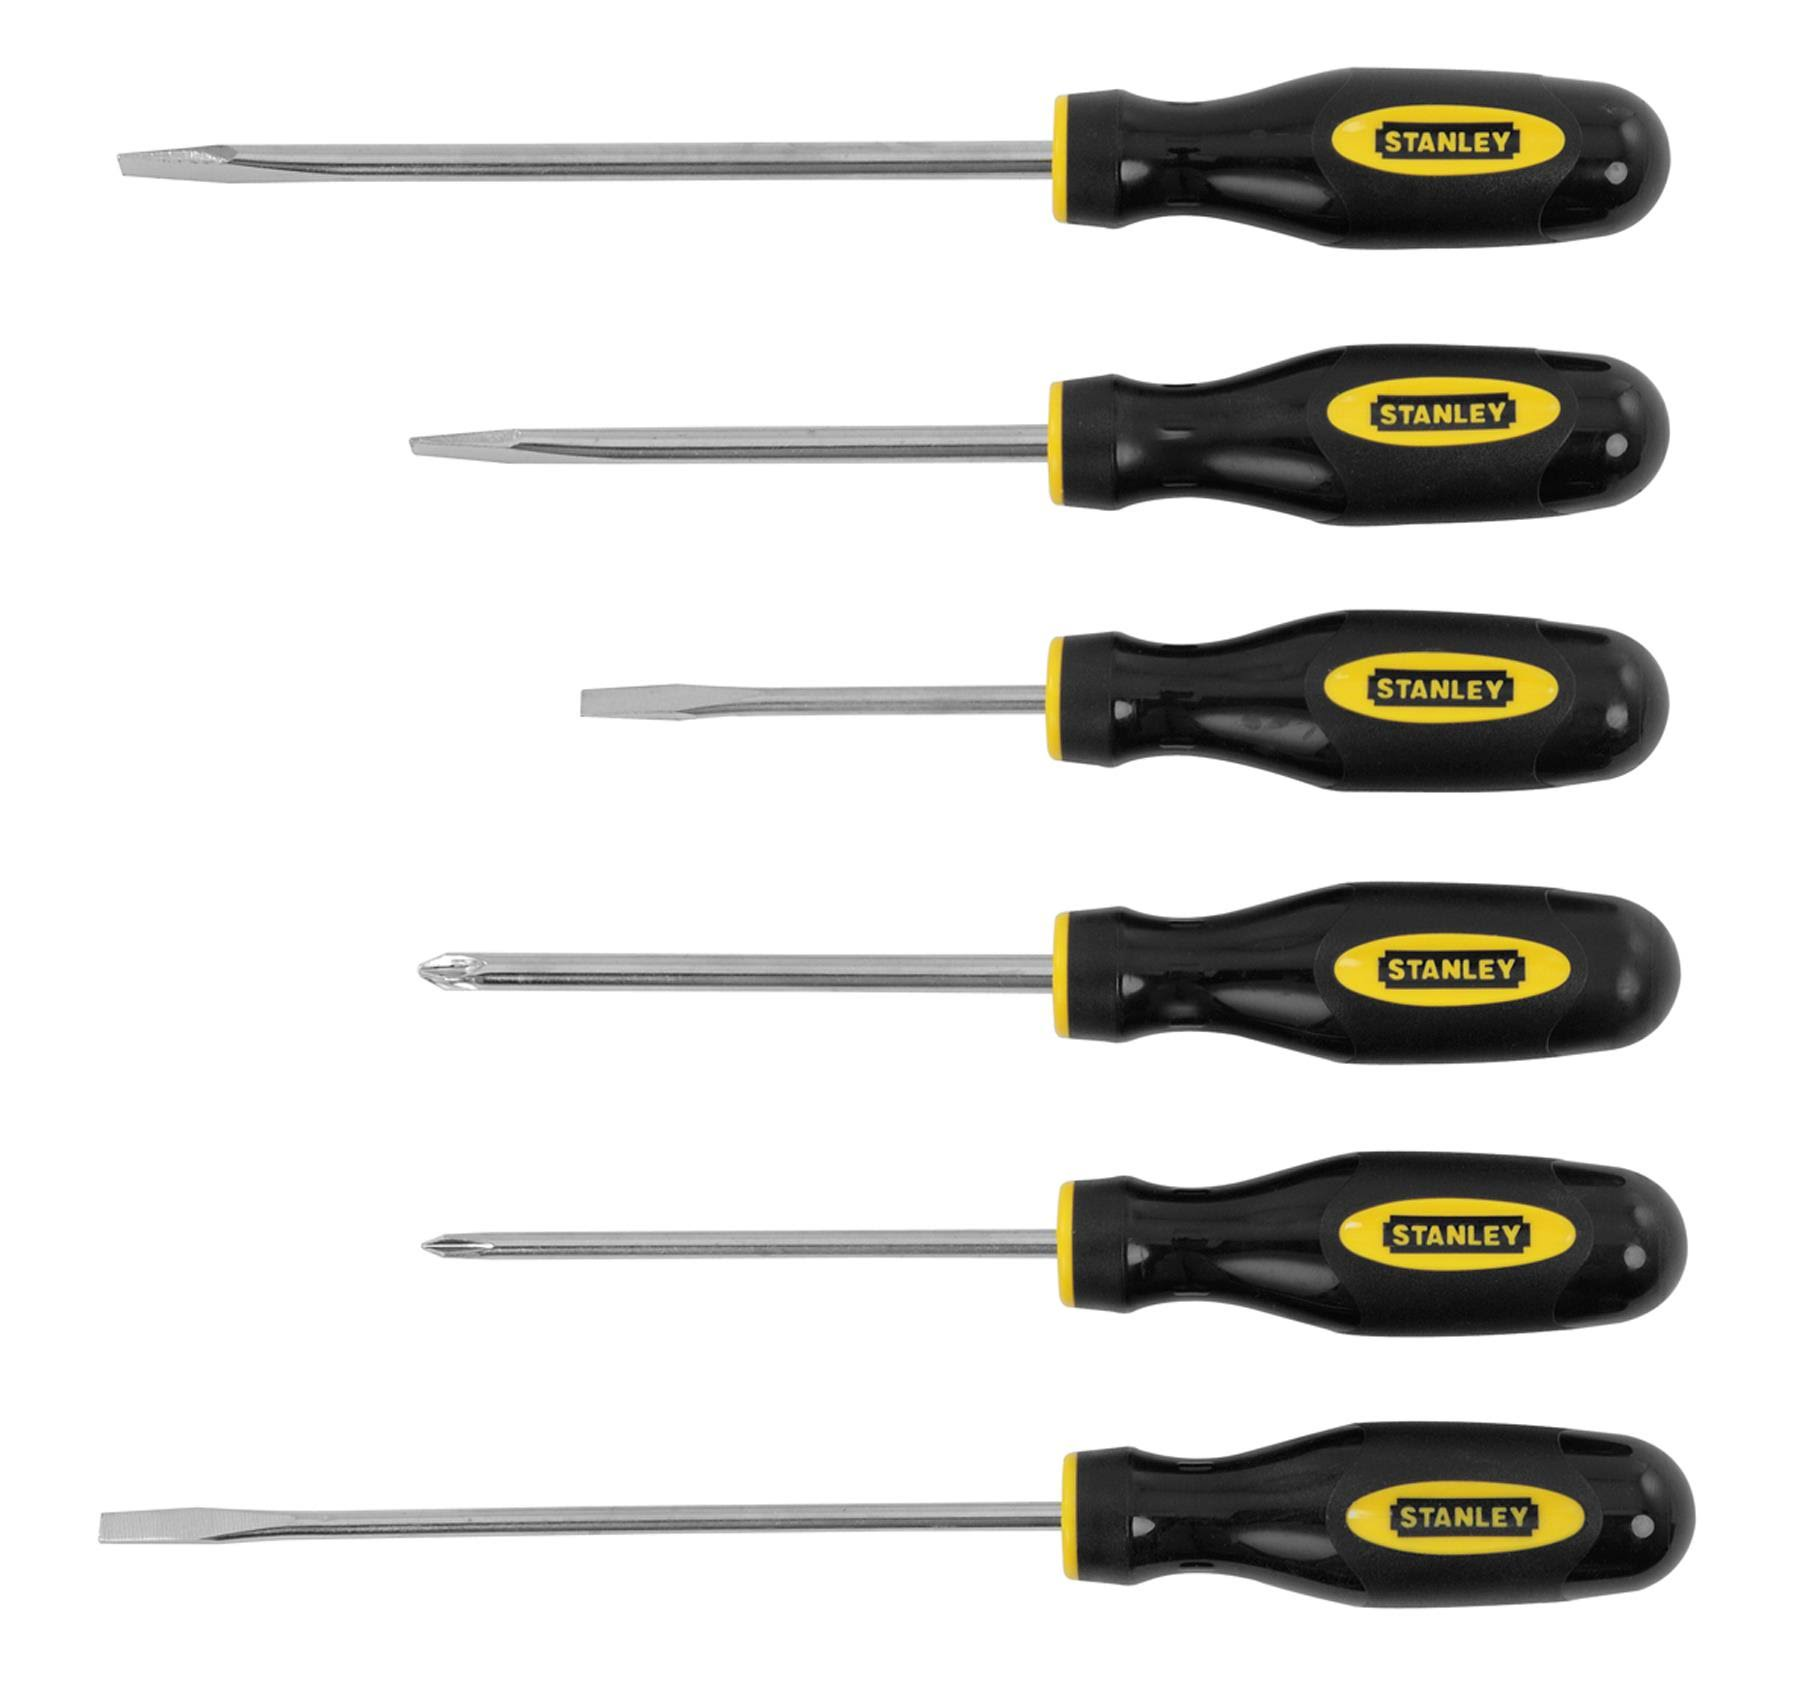 Stanley Screwdriver Set - 6 Pieces